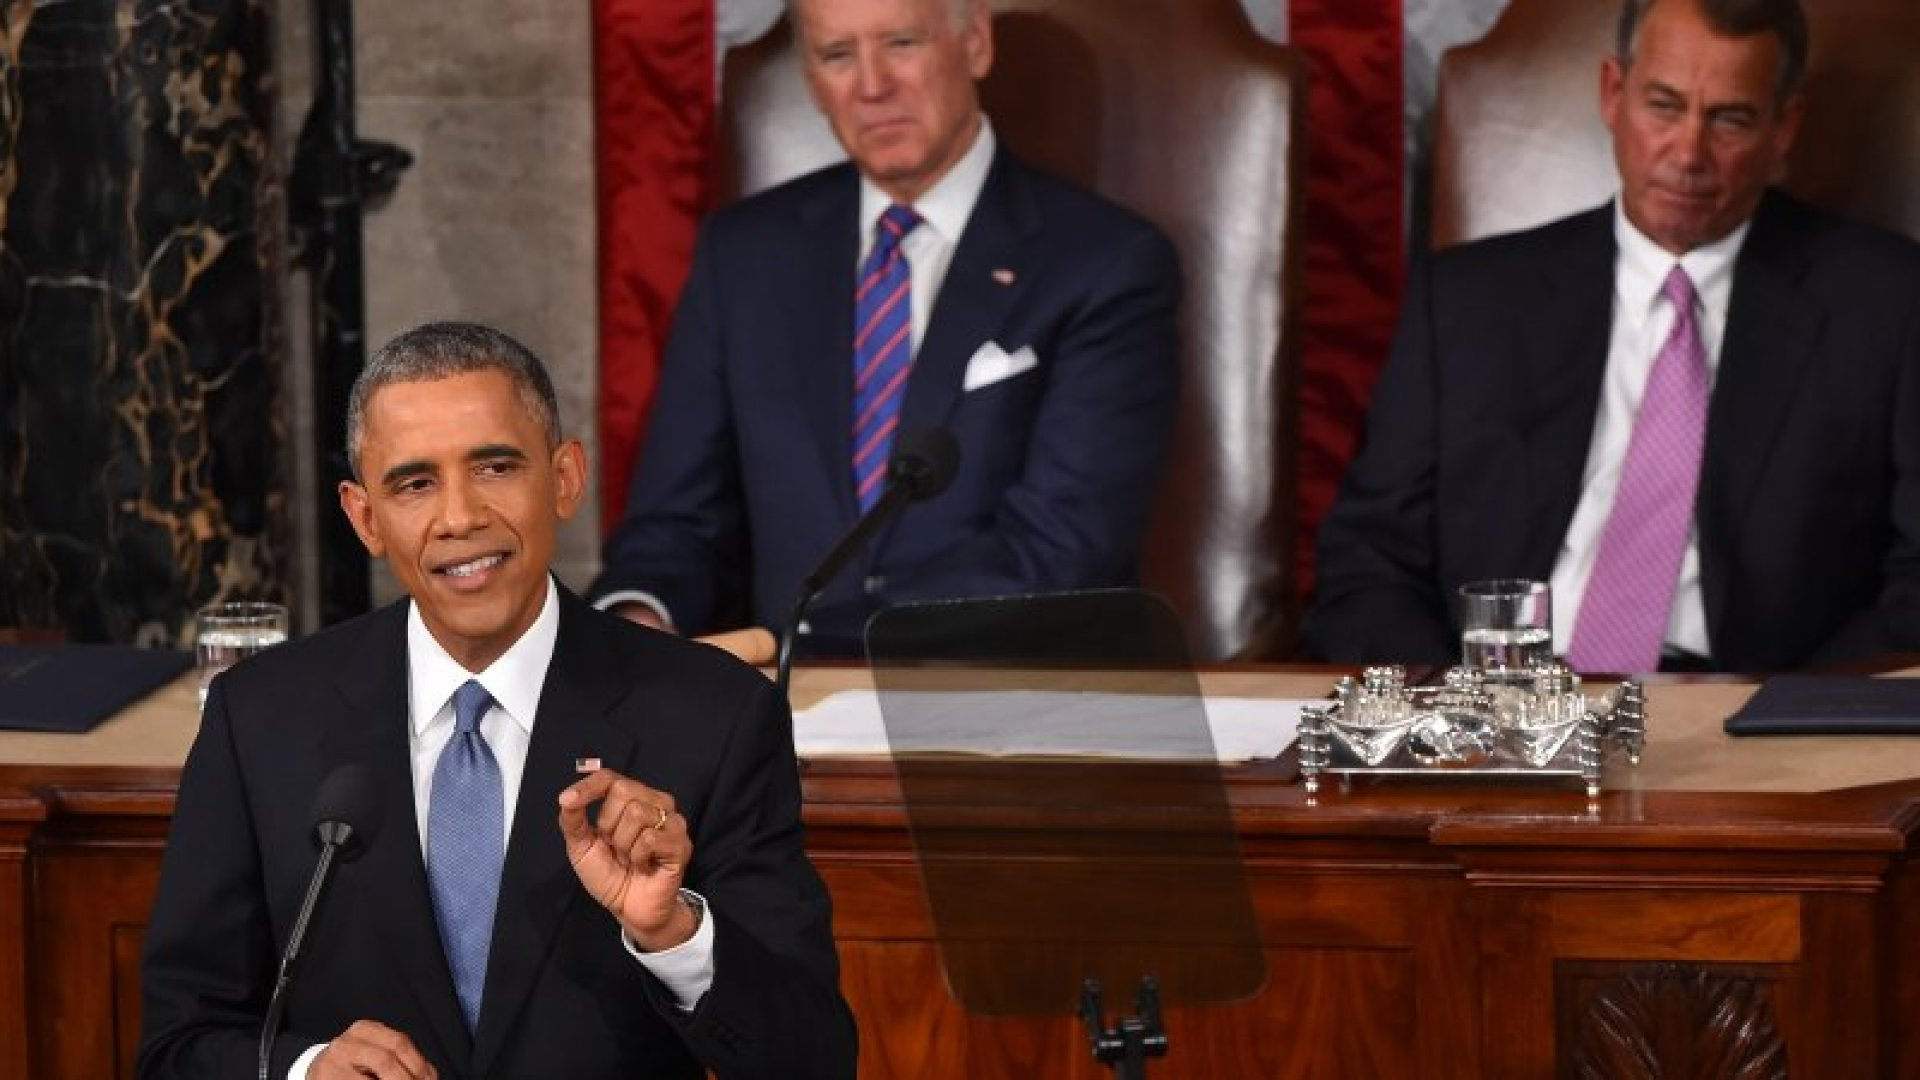 What Obama's SOTU Proposals Mean for Business Owners